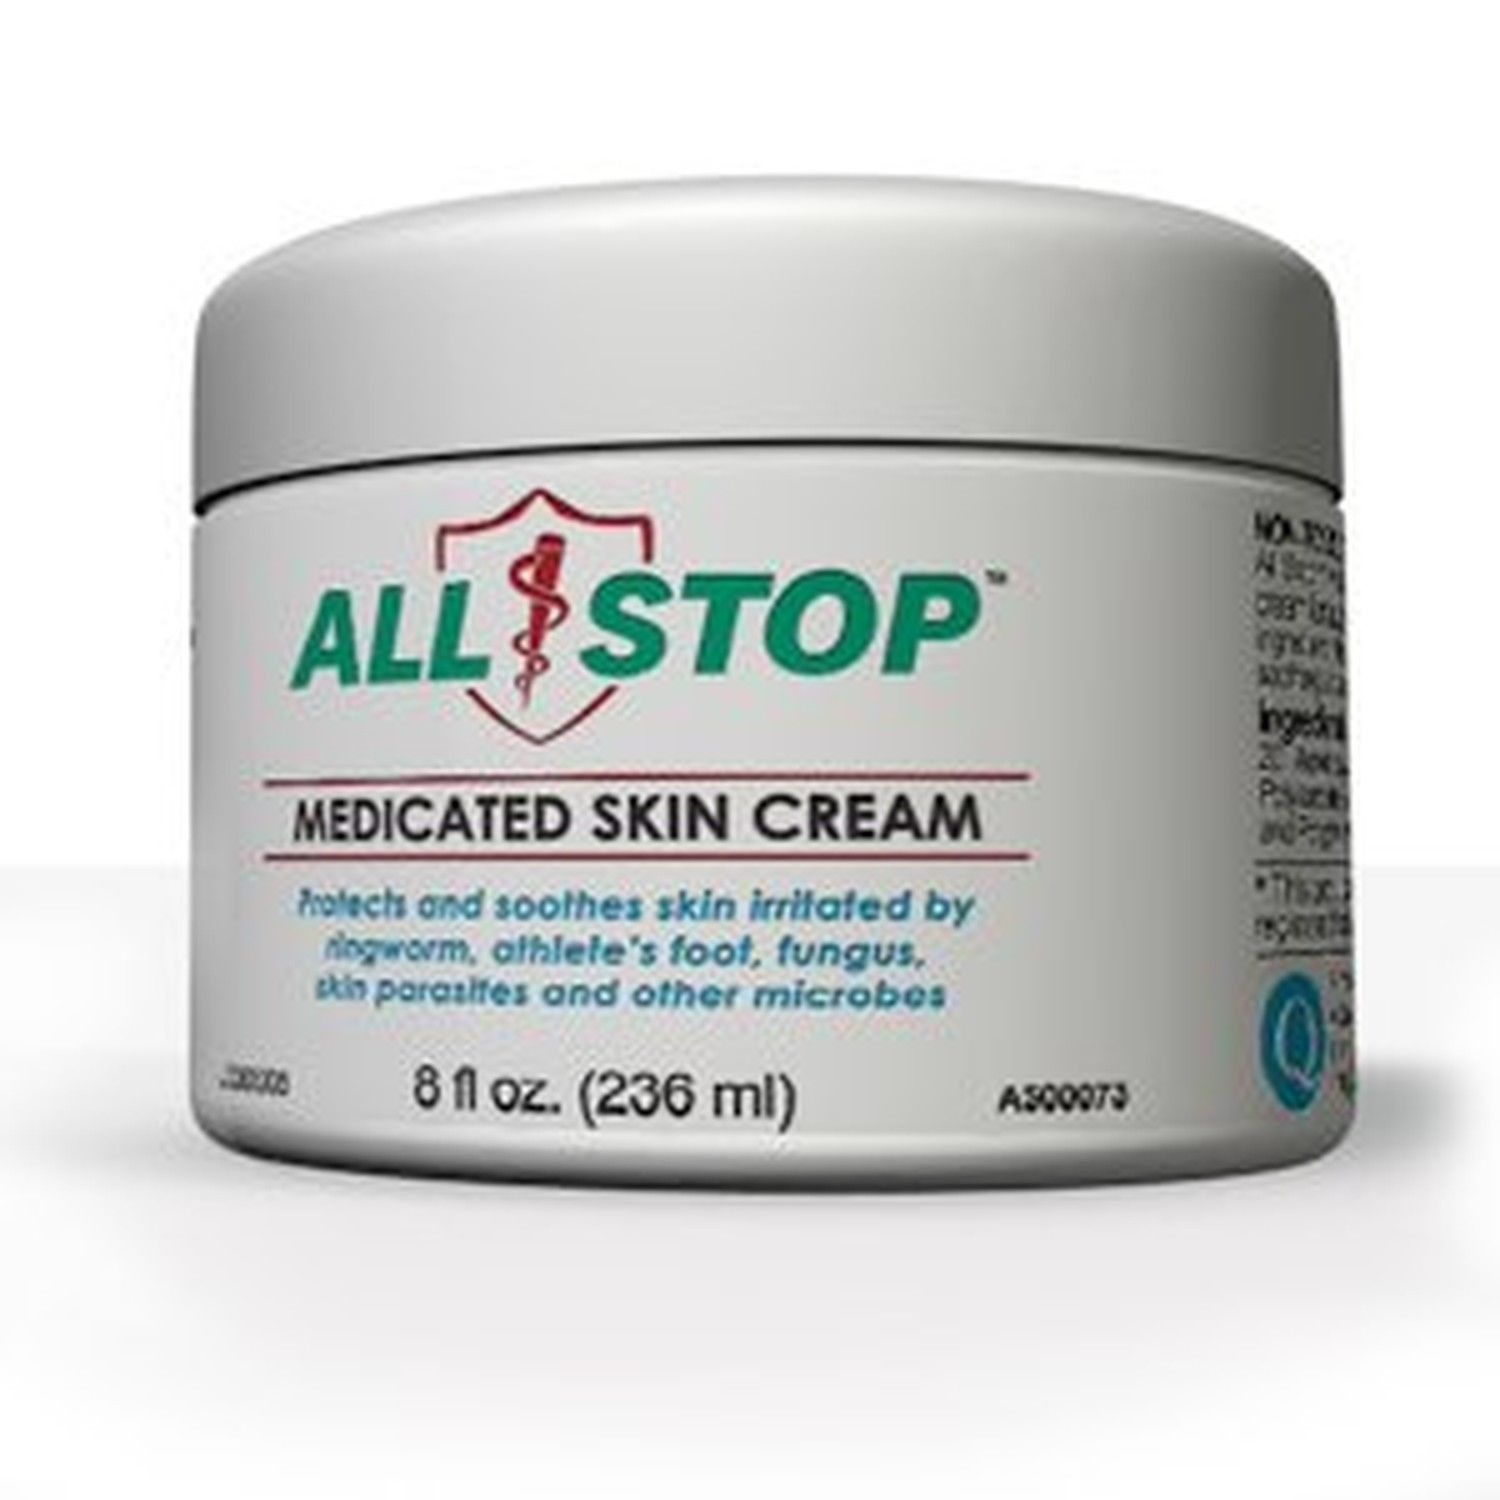 Medicated Skin Cream [8 Oz] Antifungal Healing Cream For